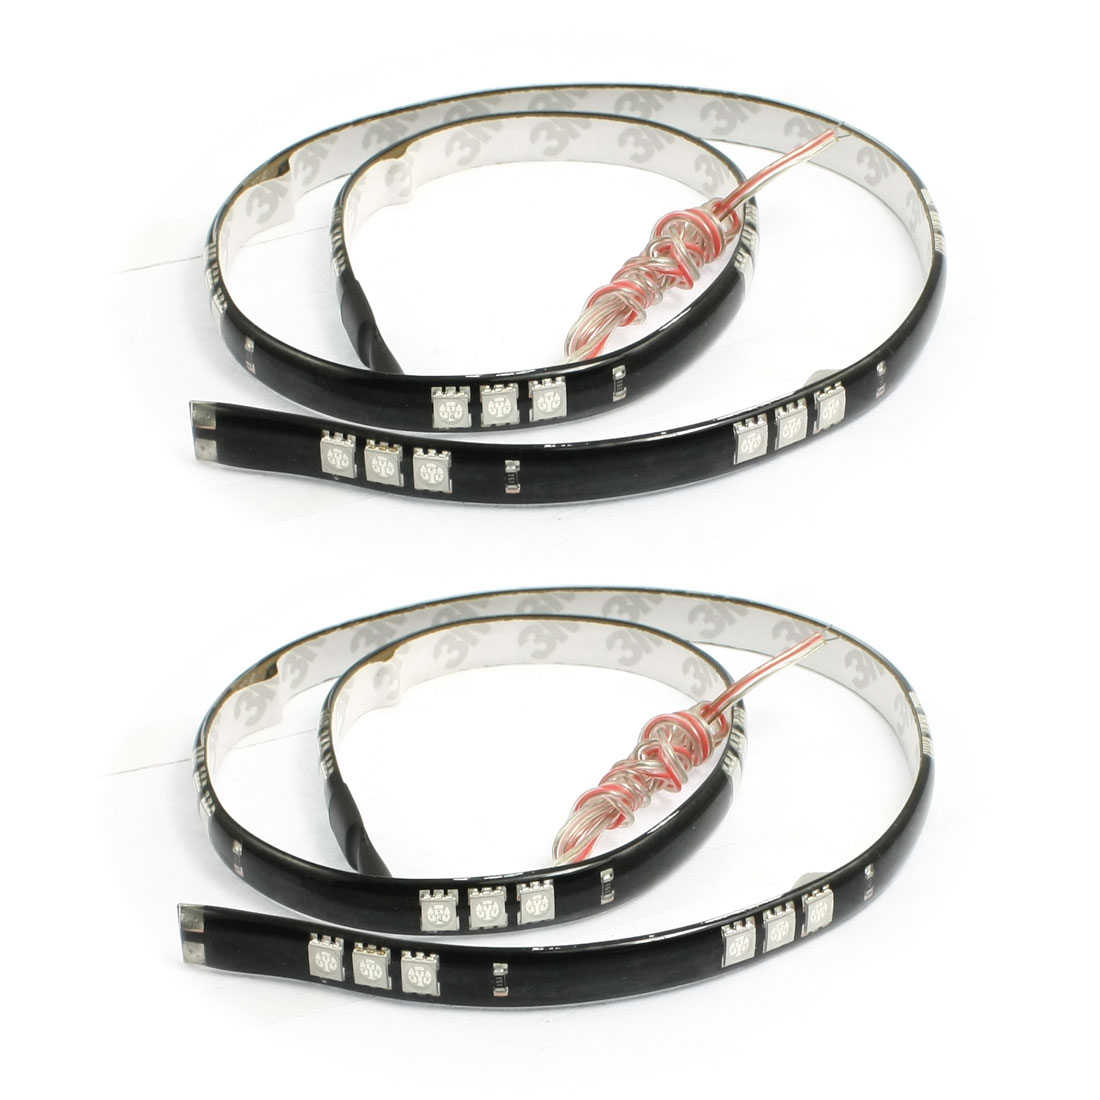 2 x Blue 5050 SMD 30 LED Waterproof Car Flexible Strip Light Lamp 60cm DC 12V